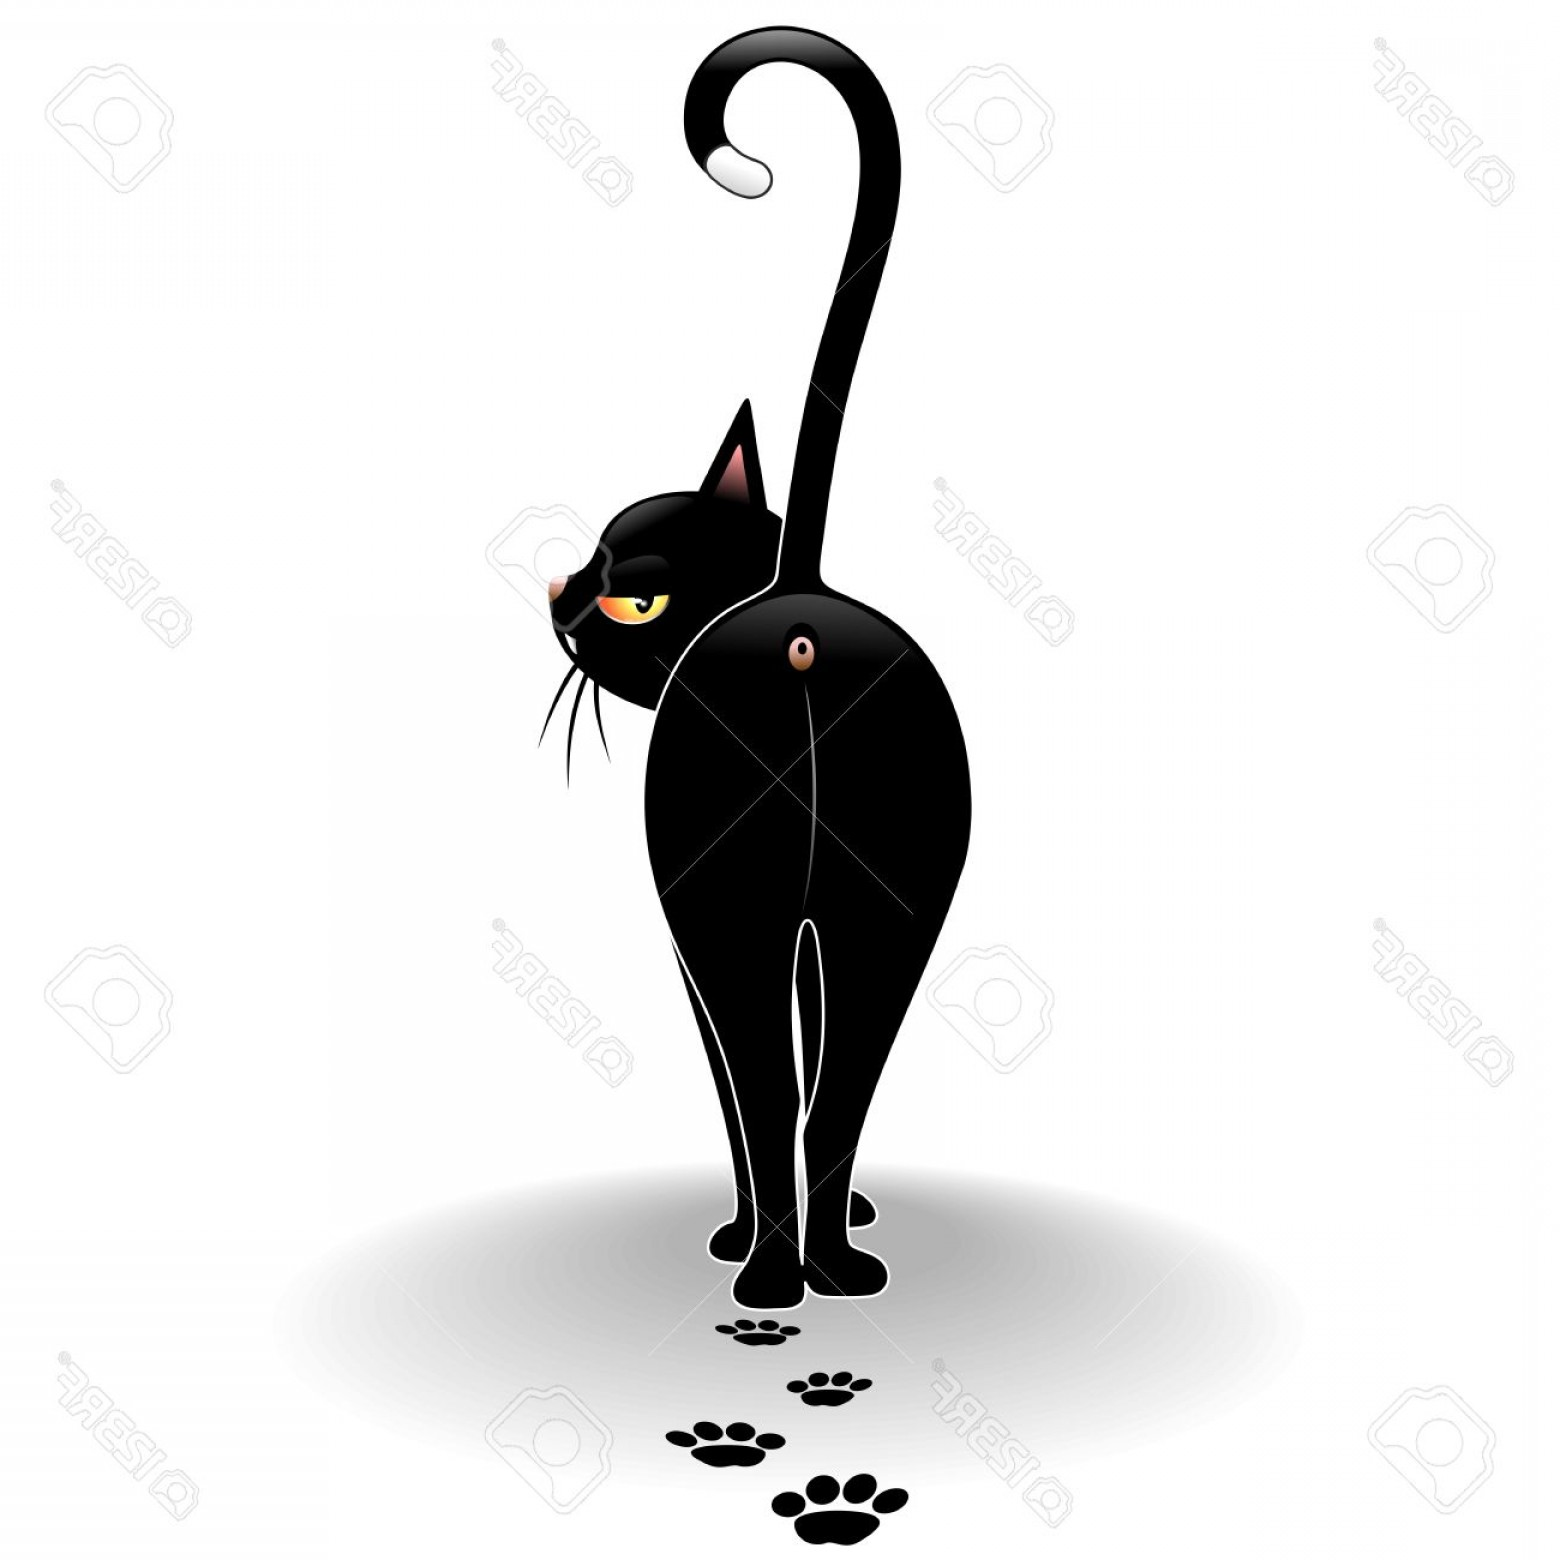 Walking Away Vector: Photodisdainful Black Cat Cartoon Walking Away